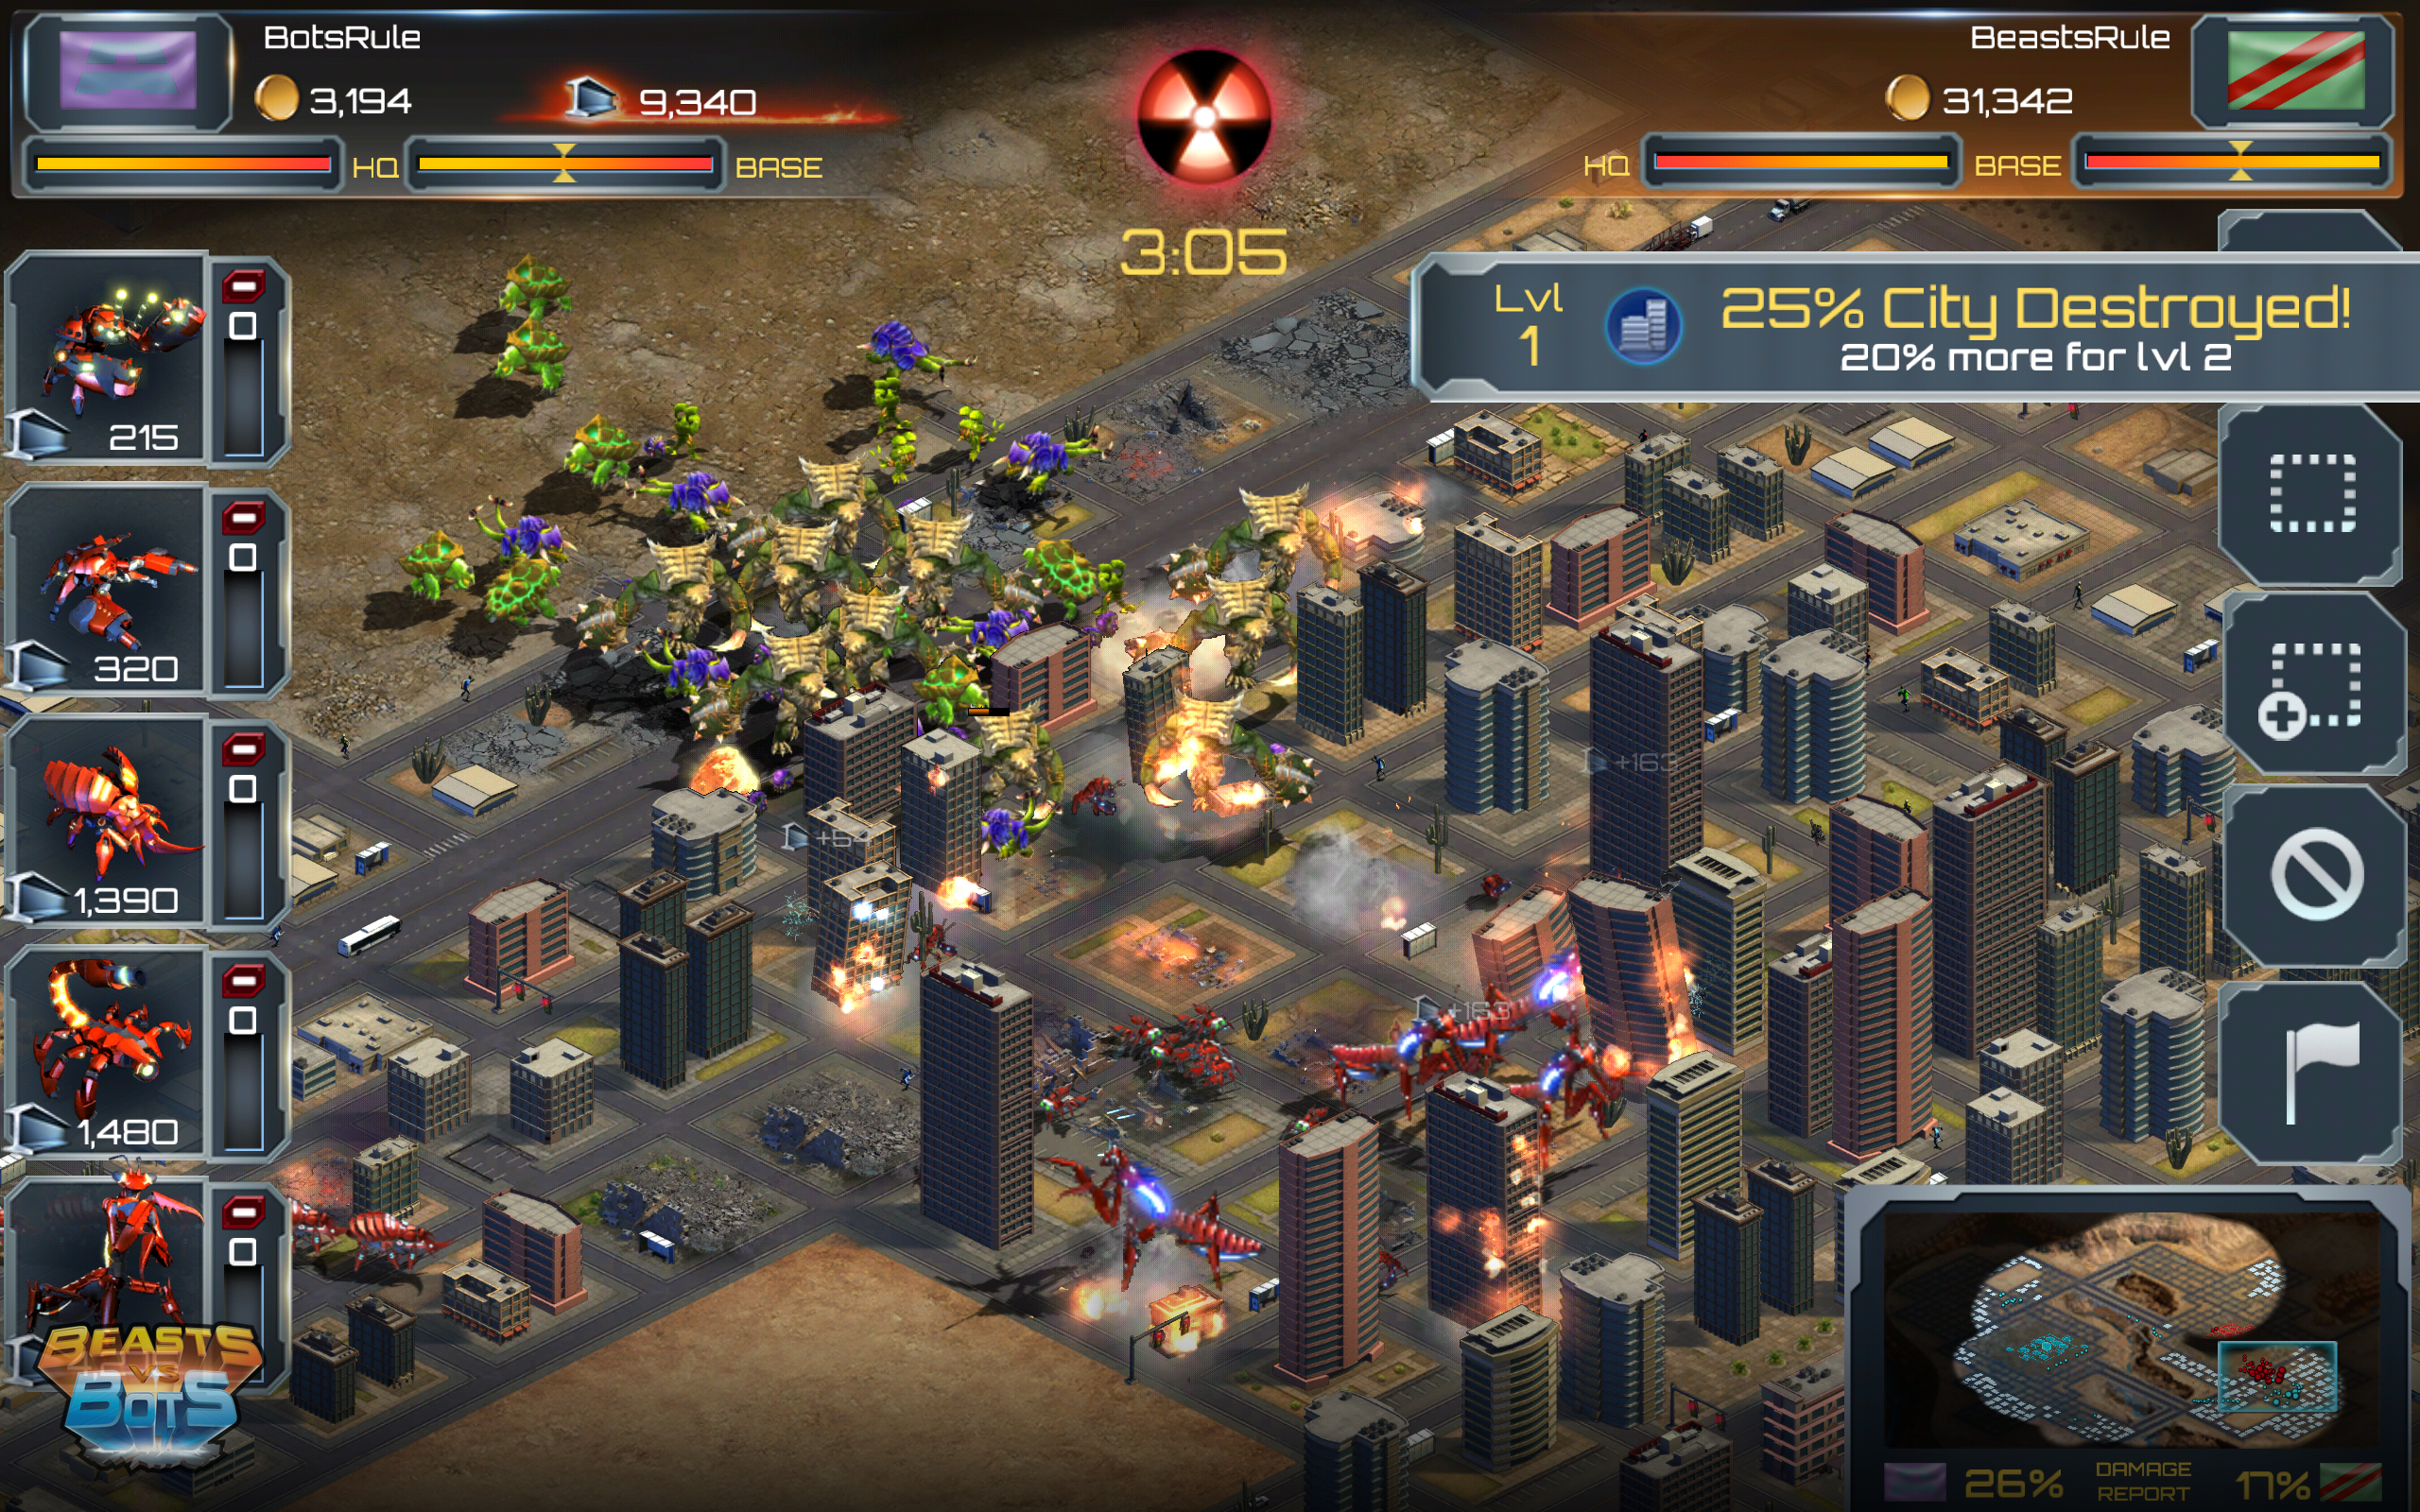 In Beasts vs. Bots, the beasts can destroy cities.